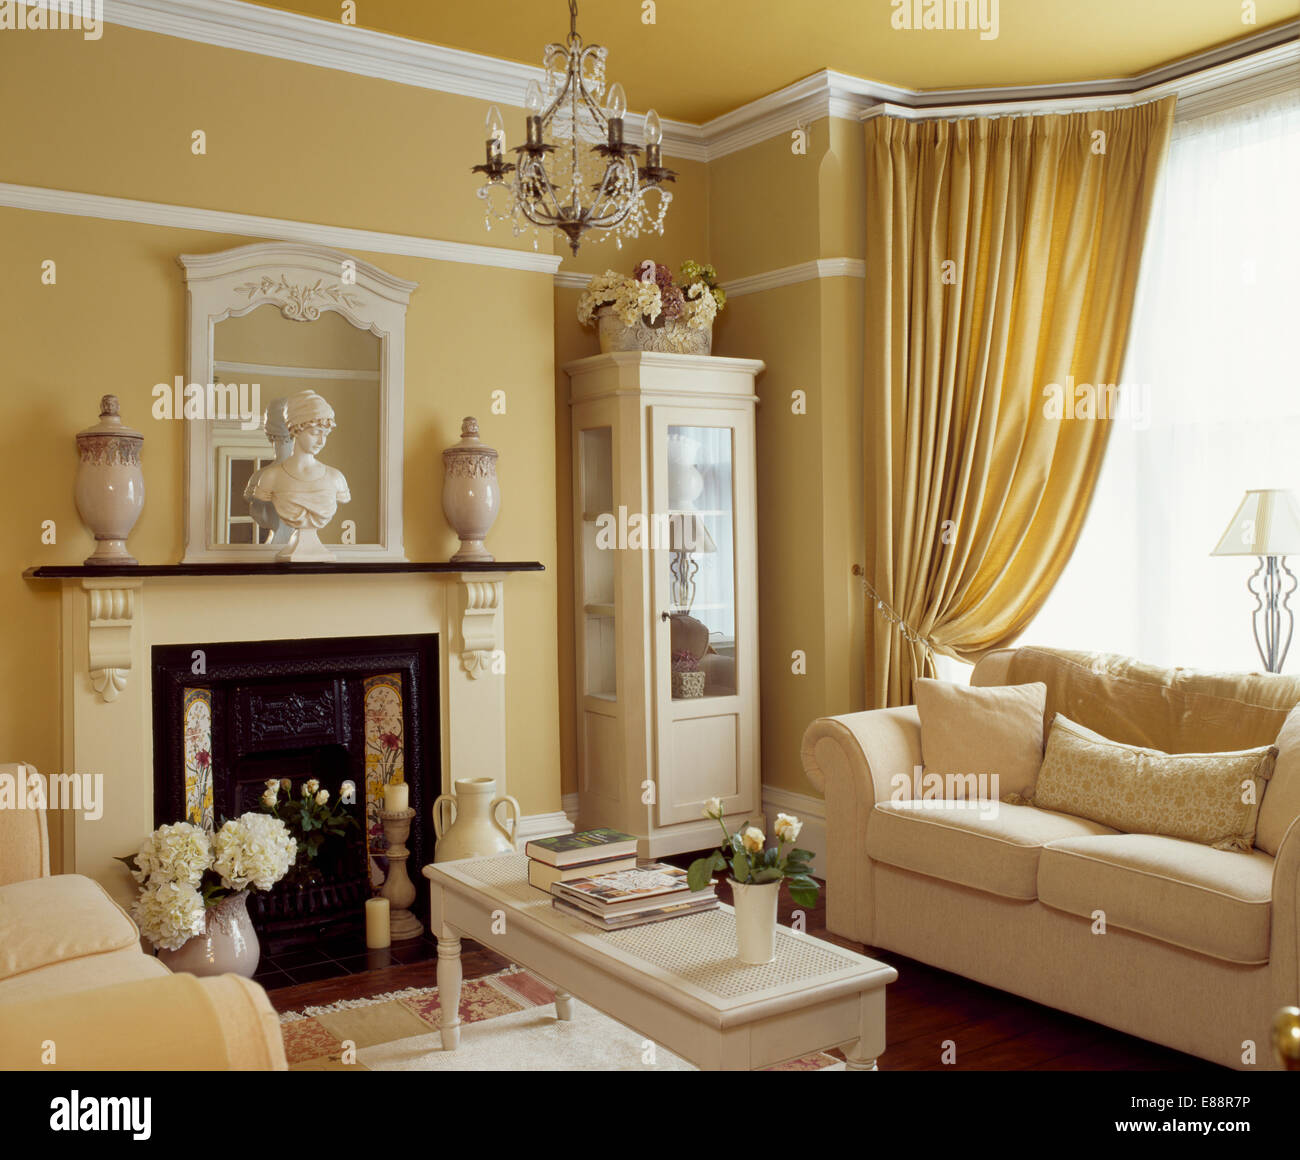 Cream sofa in front of window with cream curtains in straw